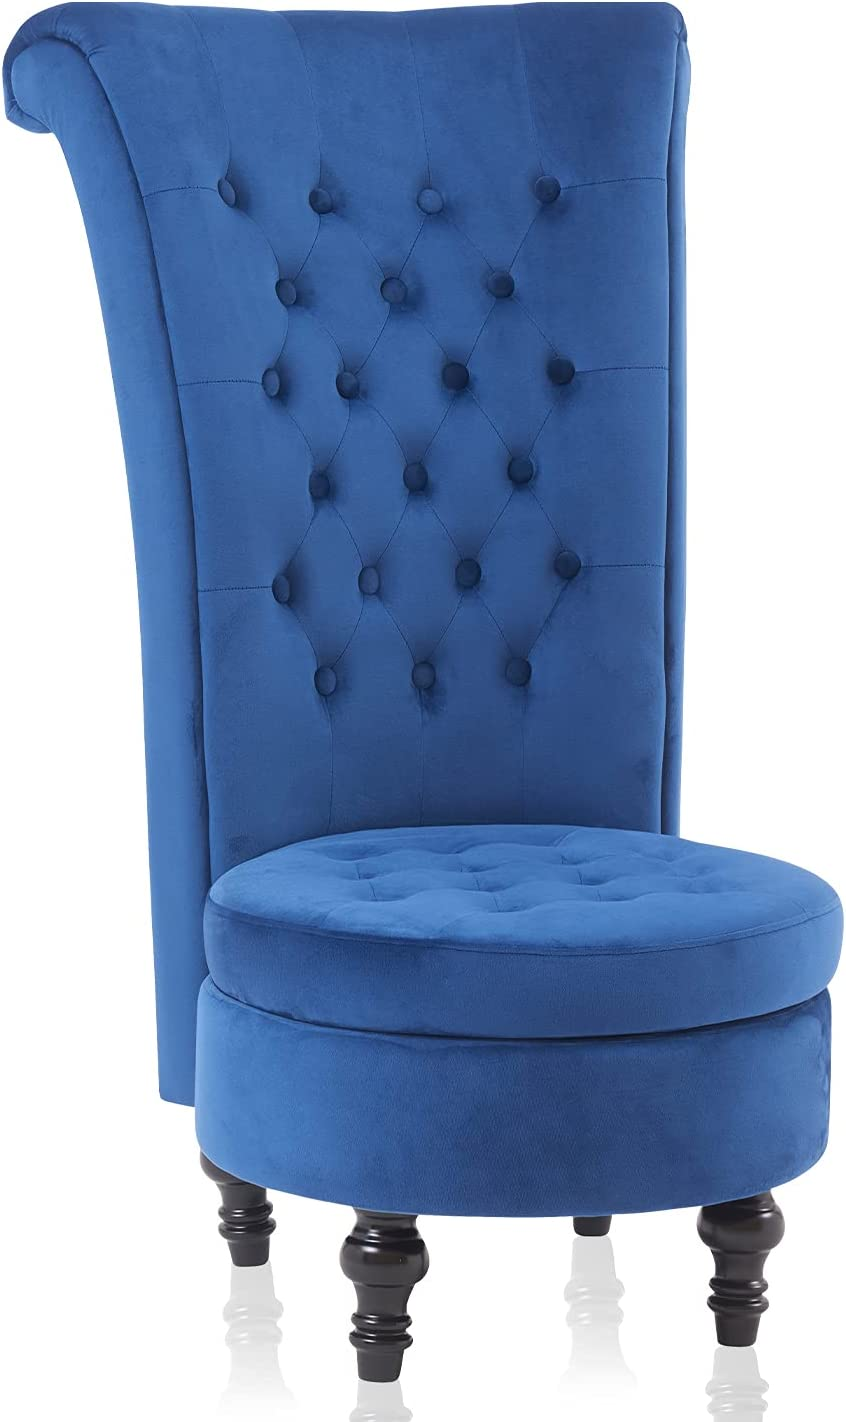 Living Room Chair Velvet High Back Accent Bedroom Chair Tufted Royal Throne Retro Armless Lounge Chair Upholstered Chairs w/Storage for Women Girls (Blue)